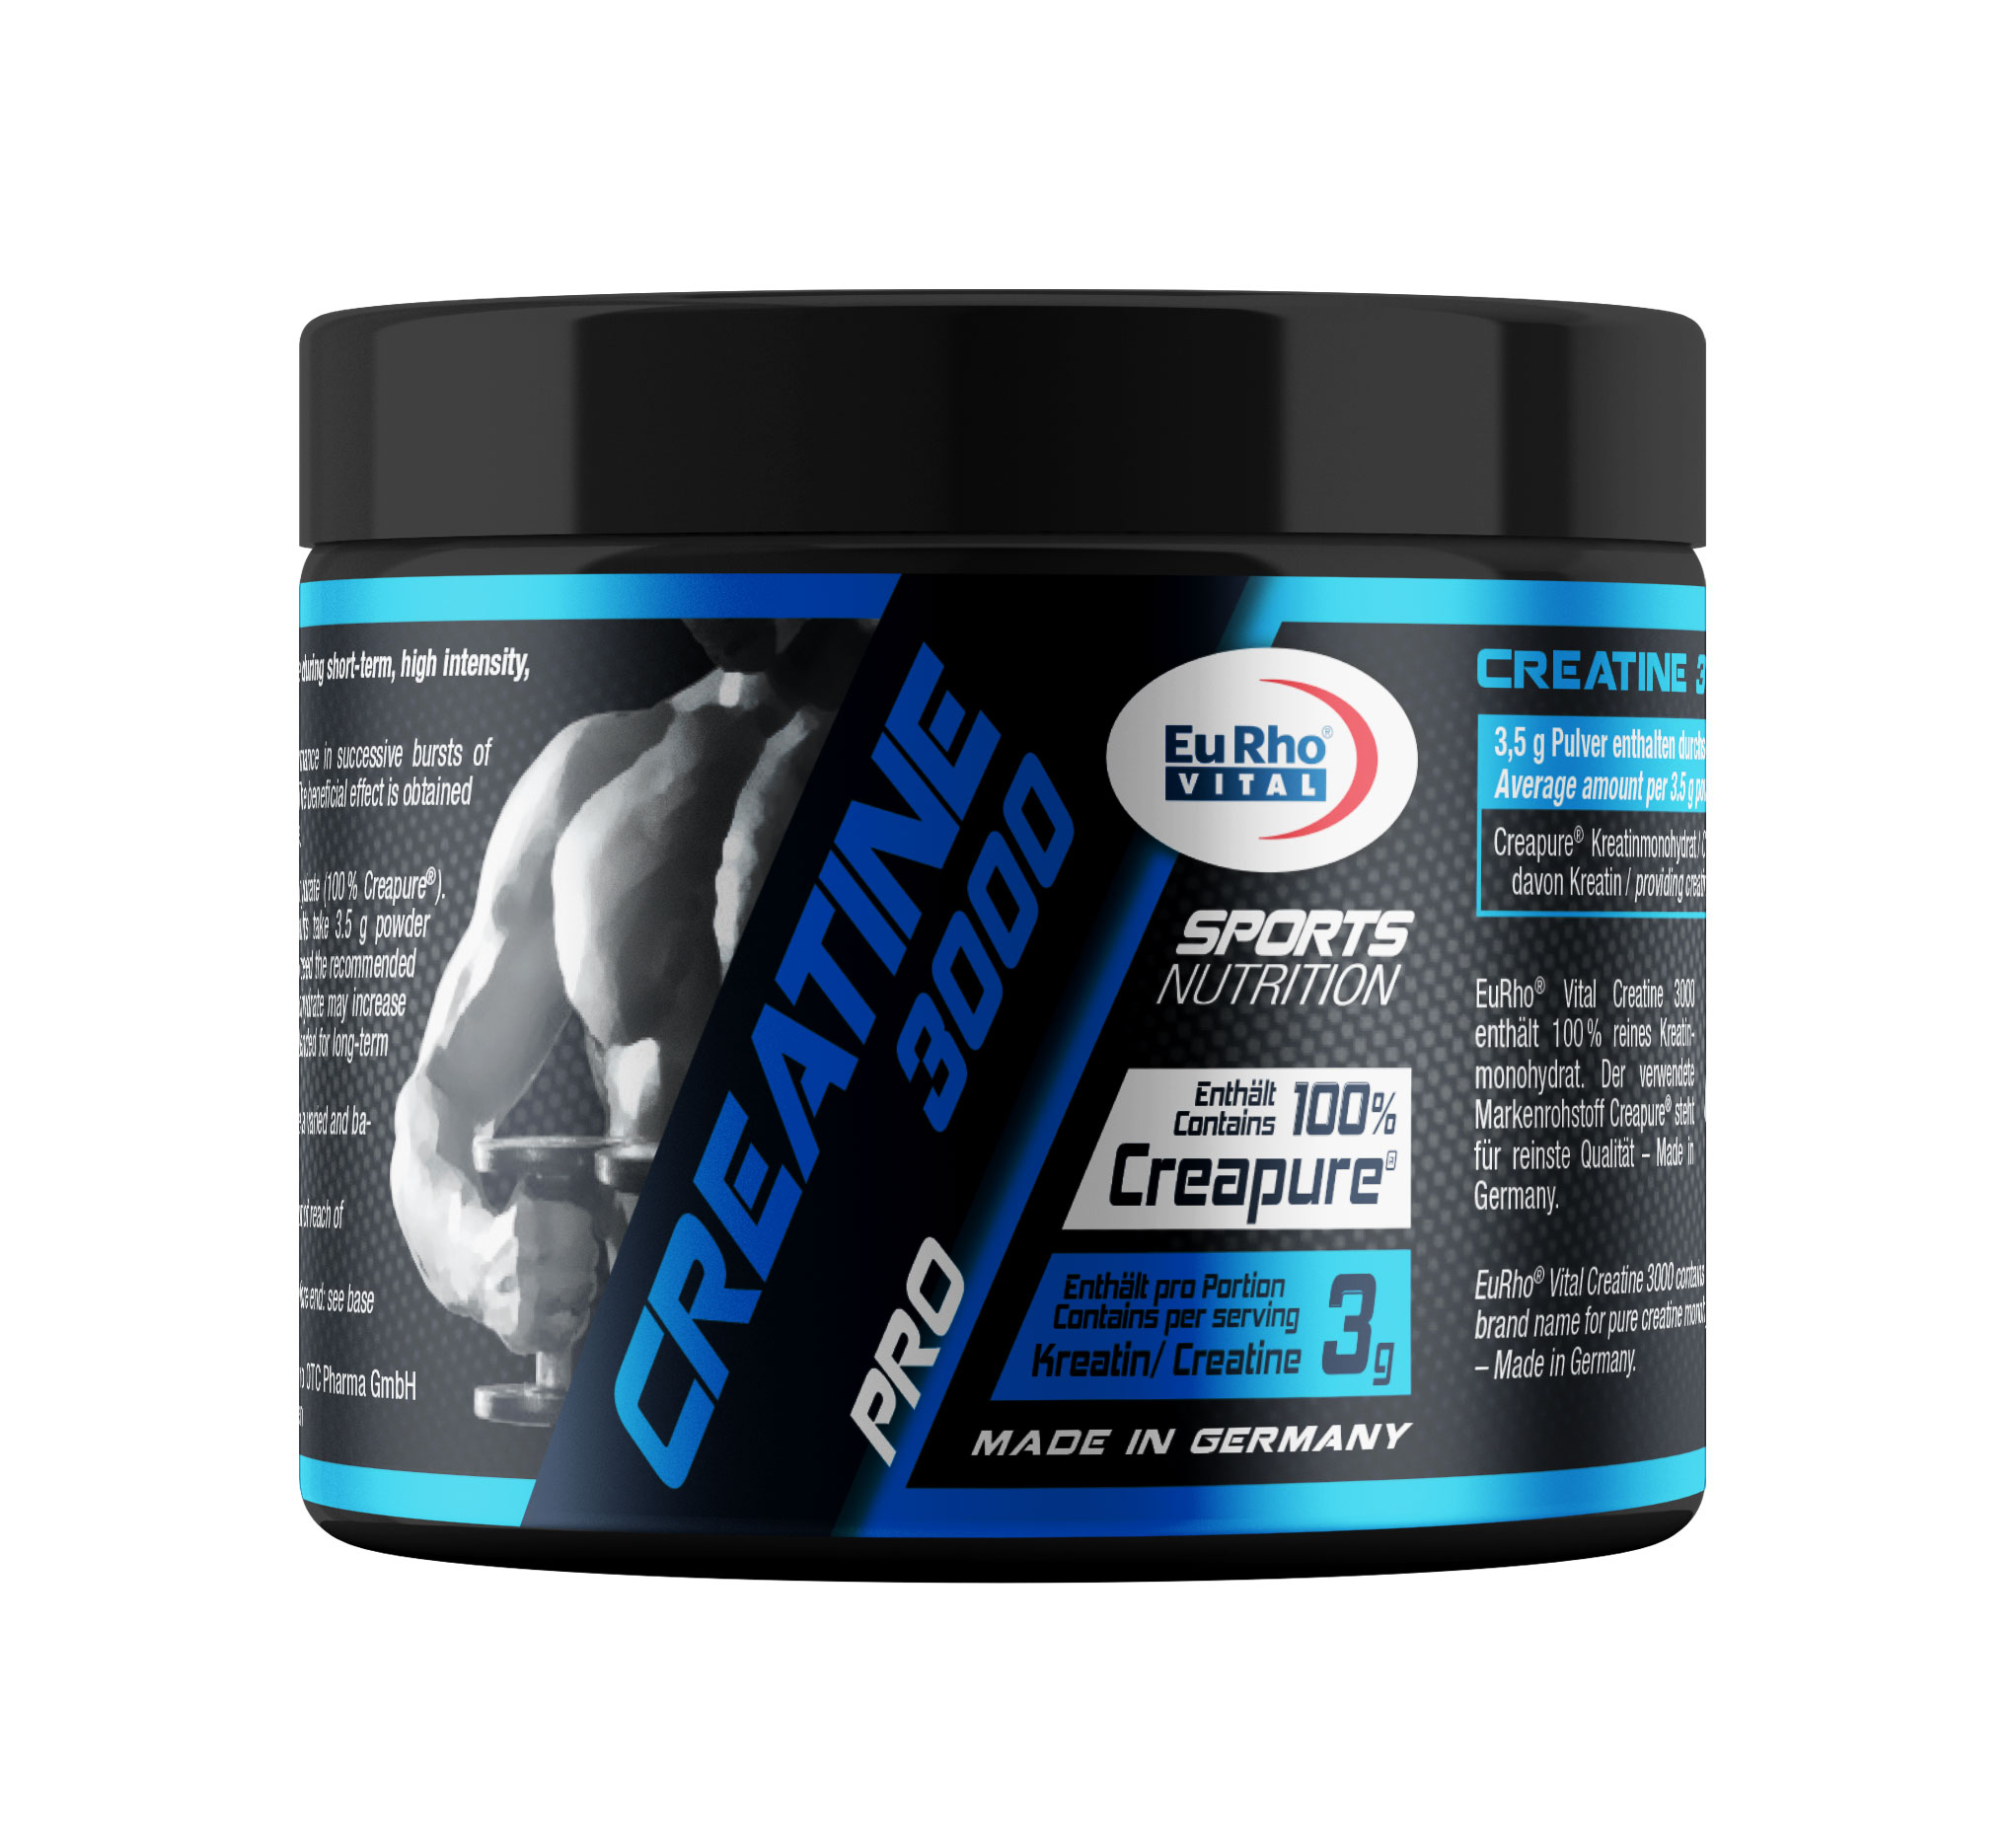 http://hakimanteb.com/wp-content/uploads/2020/04/CREATINE3000-without-shadow-10-12-98websize.jpg